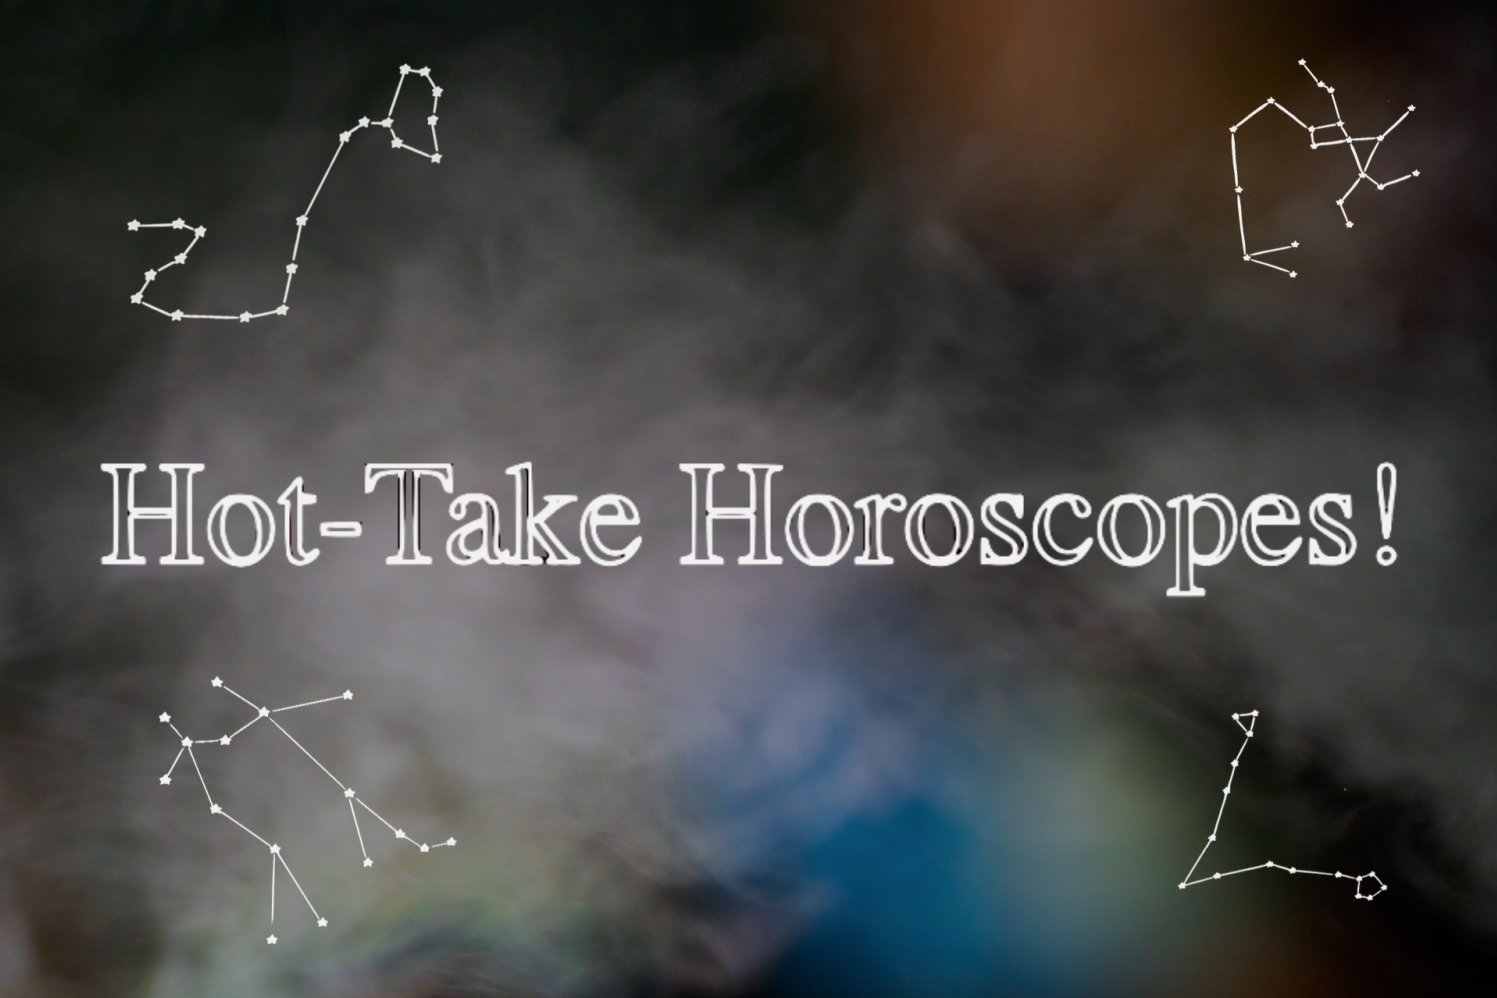 Hot horoscopes to bring you into summer! Look no further.